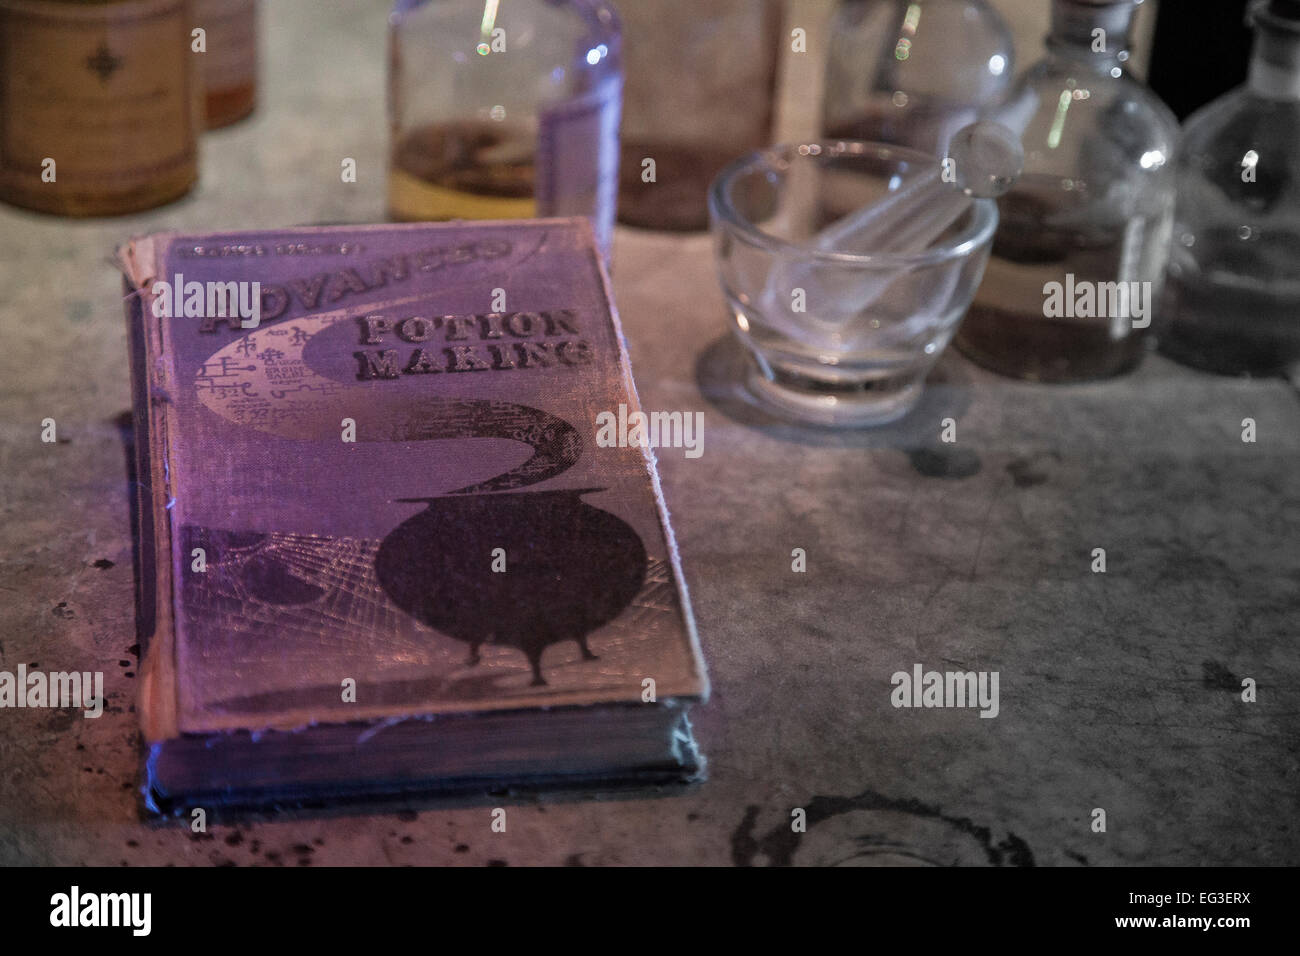 advanced potion making book harry potter - Stock Image